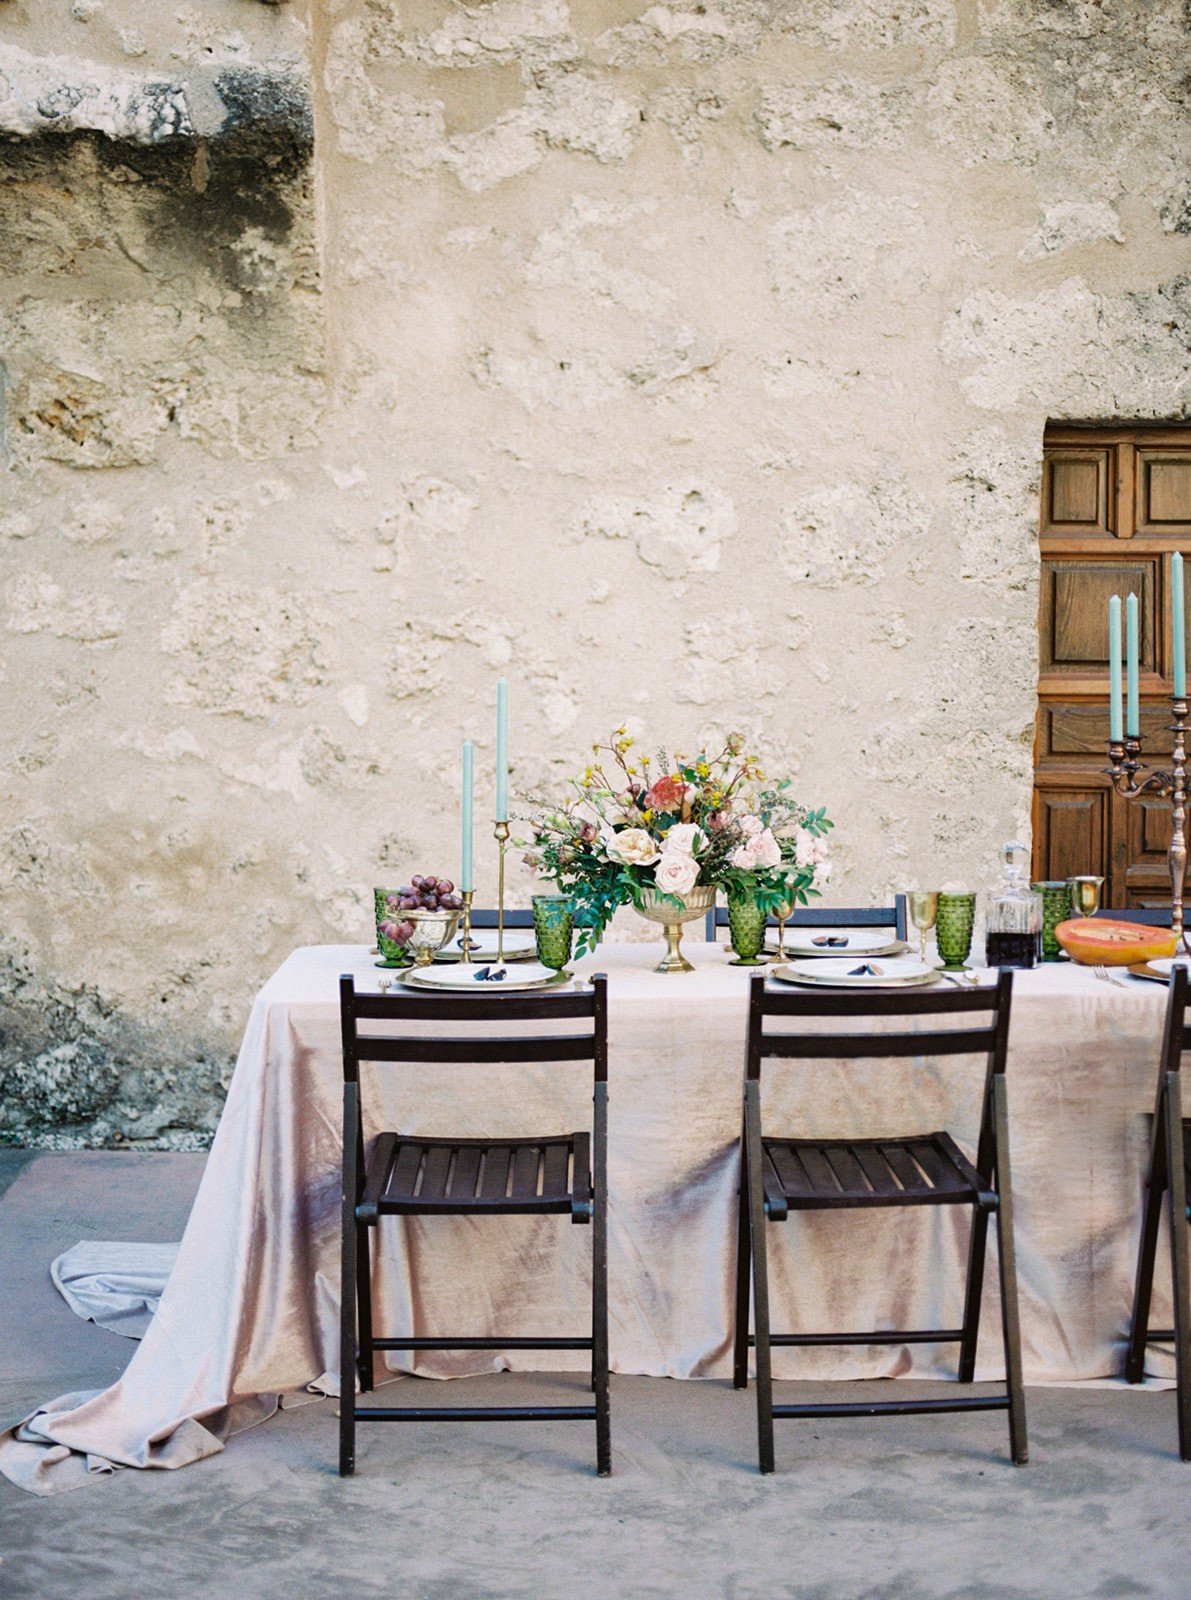 Mission Conception - Spanish setting for a Romantic Wedding